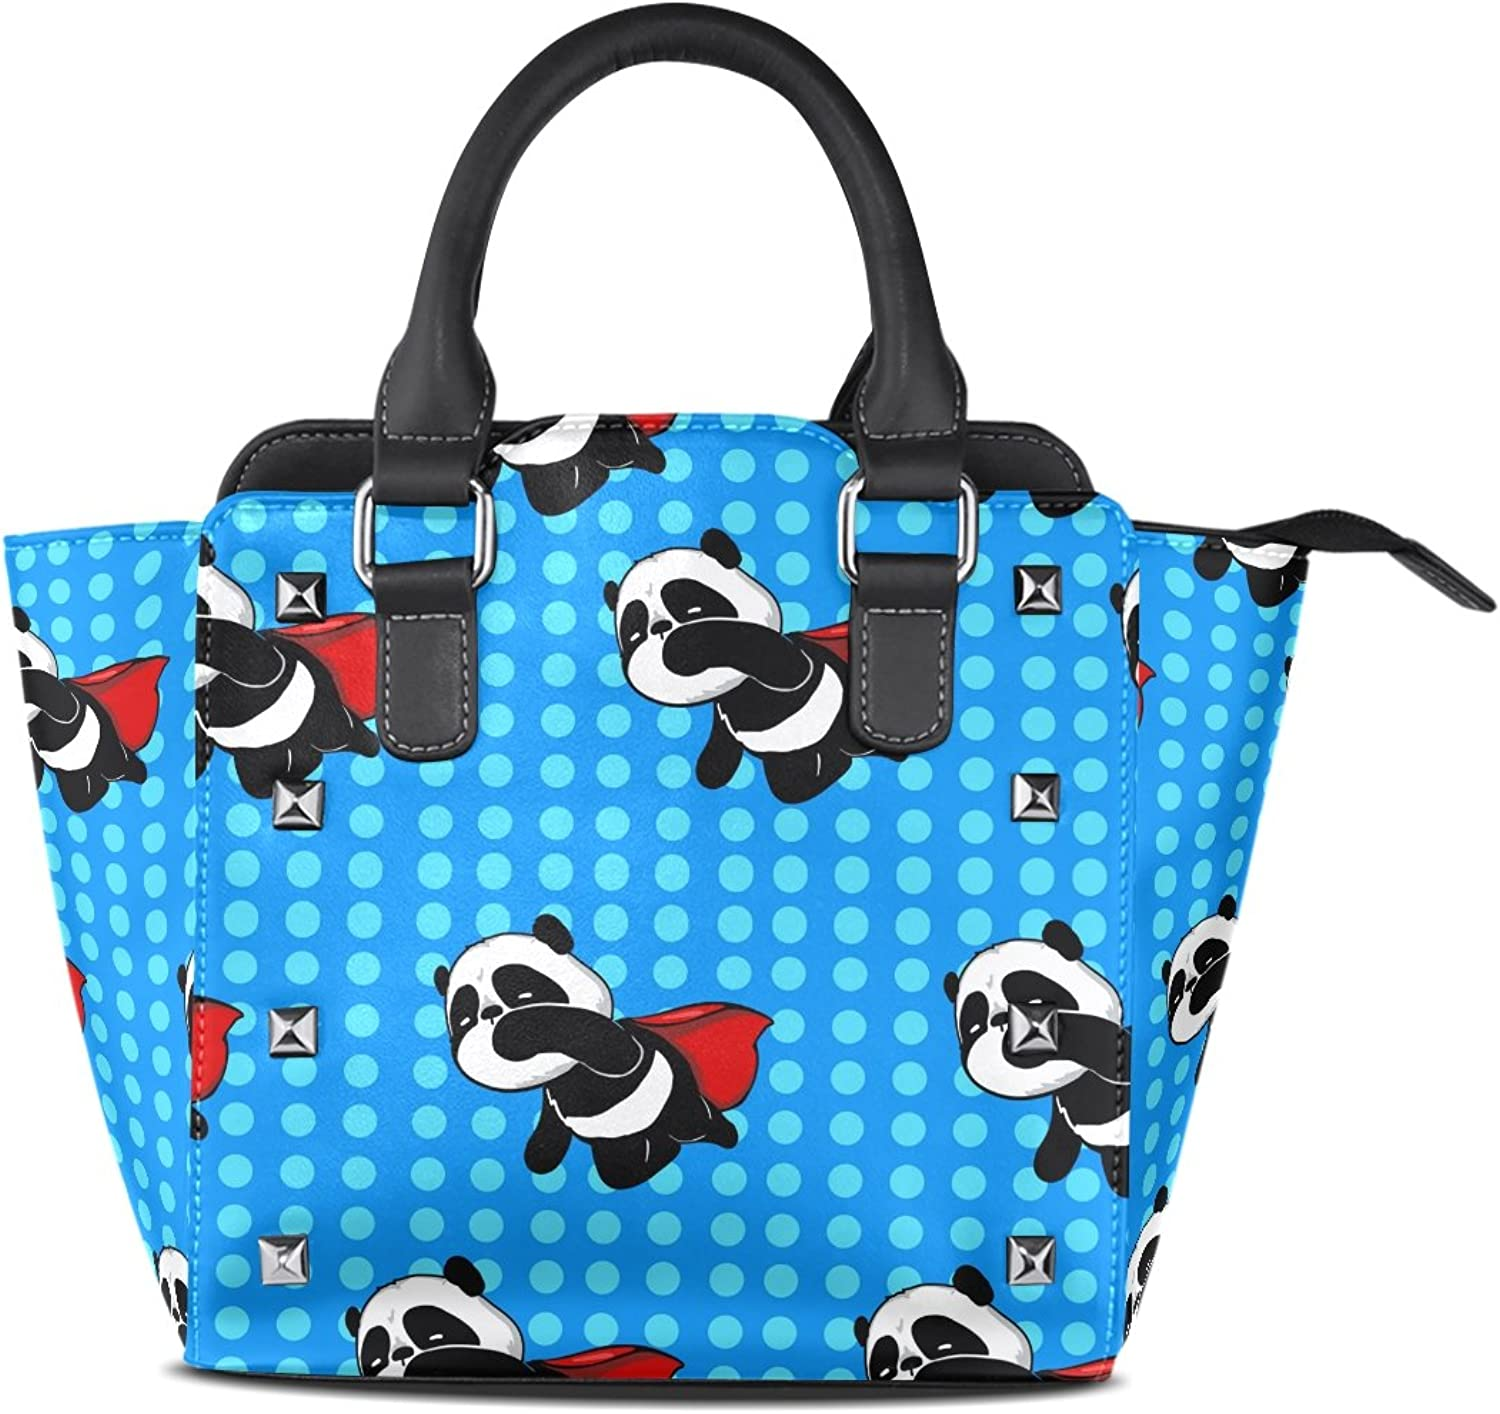 Sunlome Super Hero Panda bluee Print Handbags Women's PU Leather Top-Handle Shoulder Bags